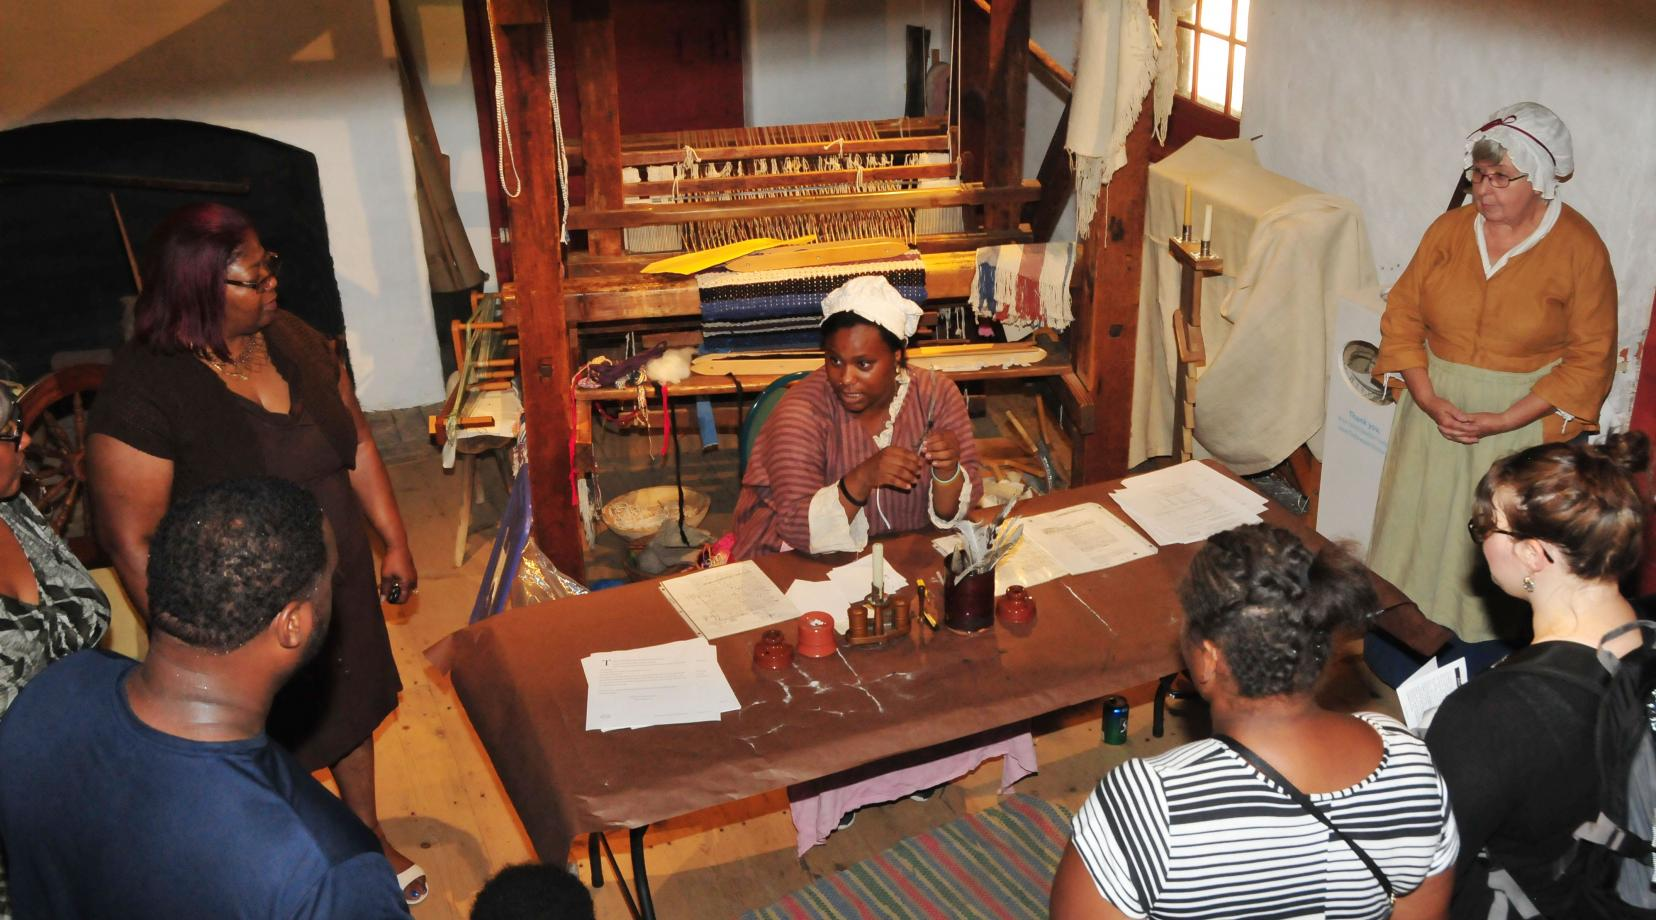 <p>Armani McCoy explains the use of the quail pen during the 1700s to visitors at the John Dickinson Plantation.</p>